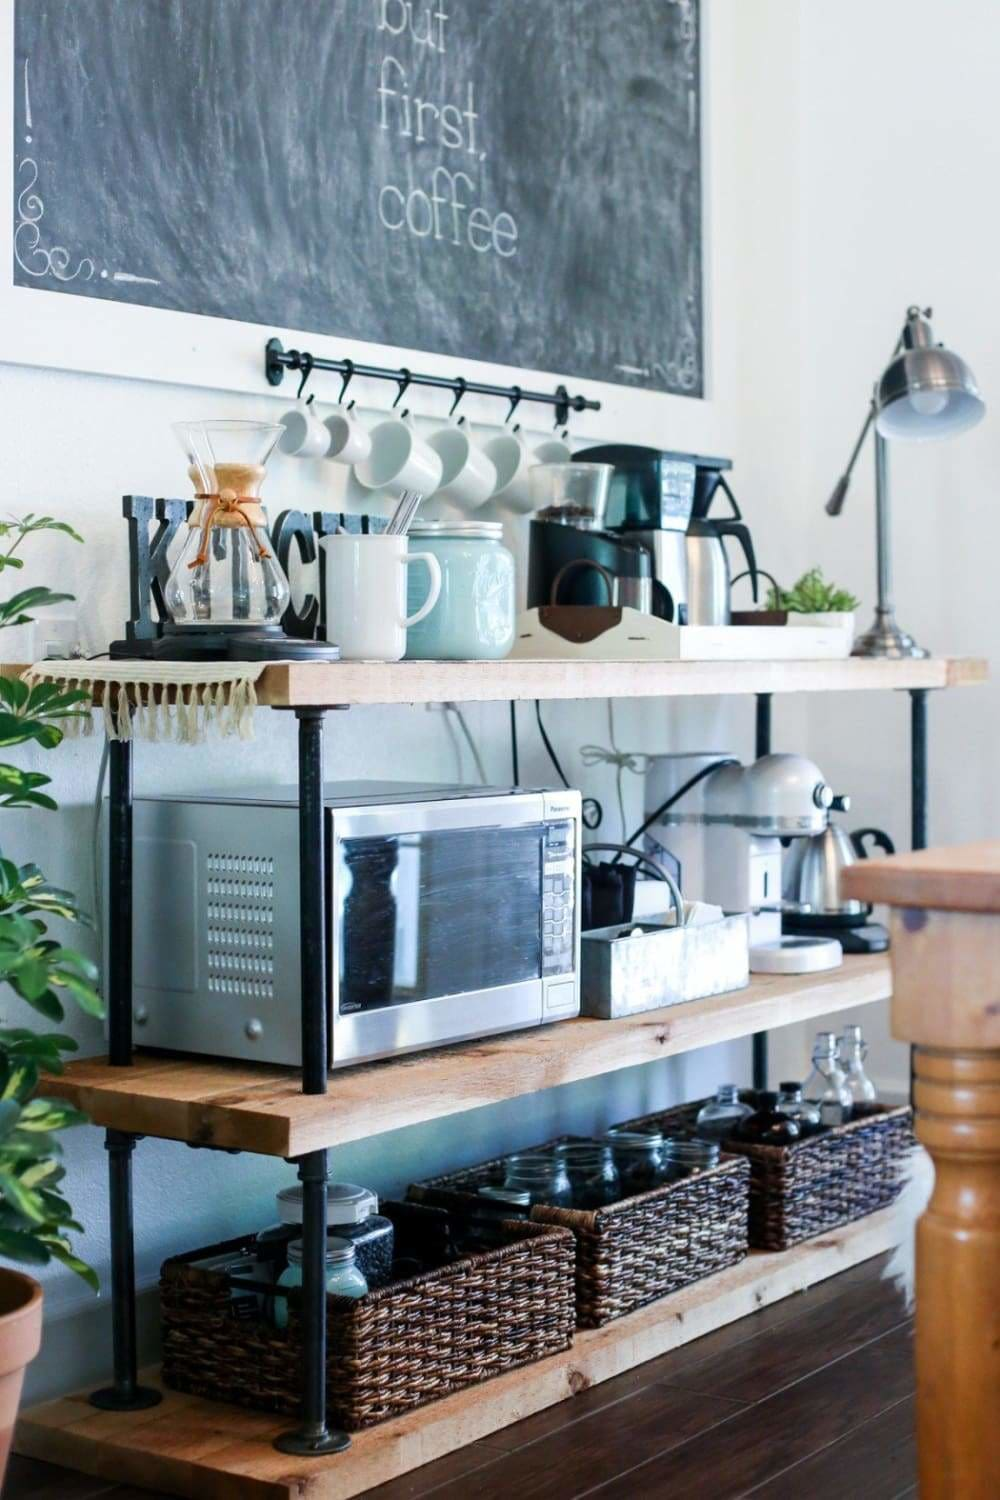 Black pipe is farmhouse design is popular and this DIY coffee station is great